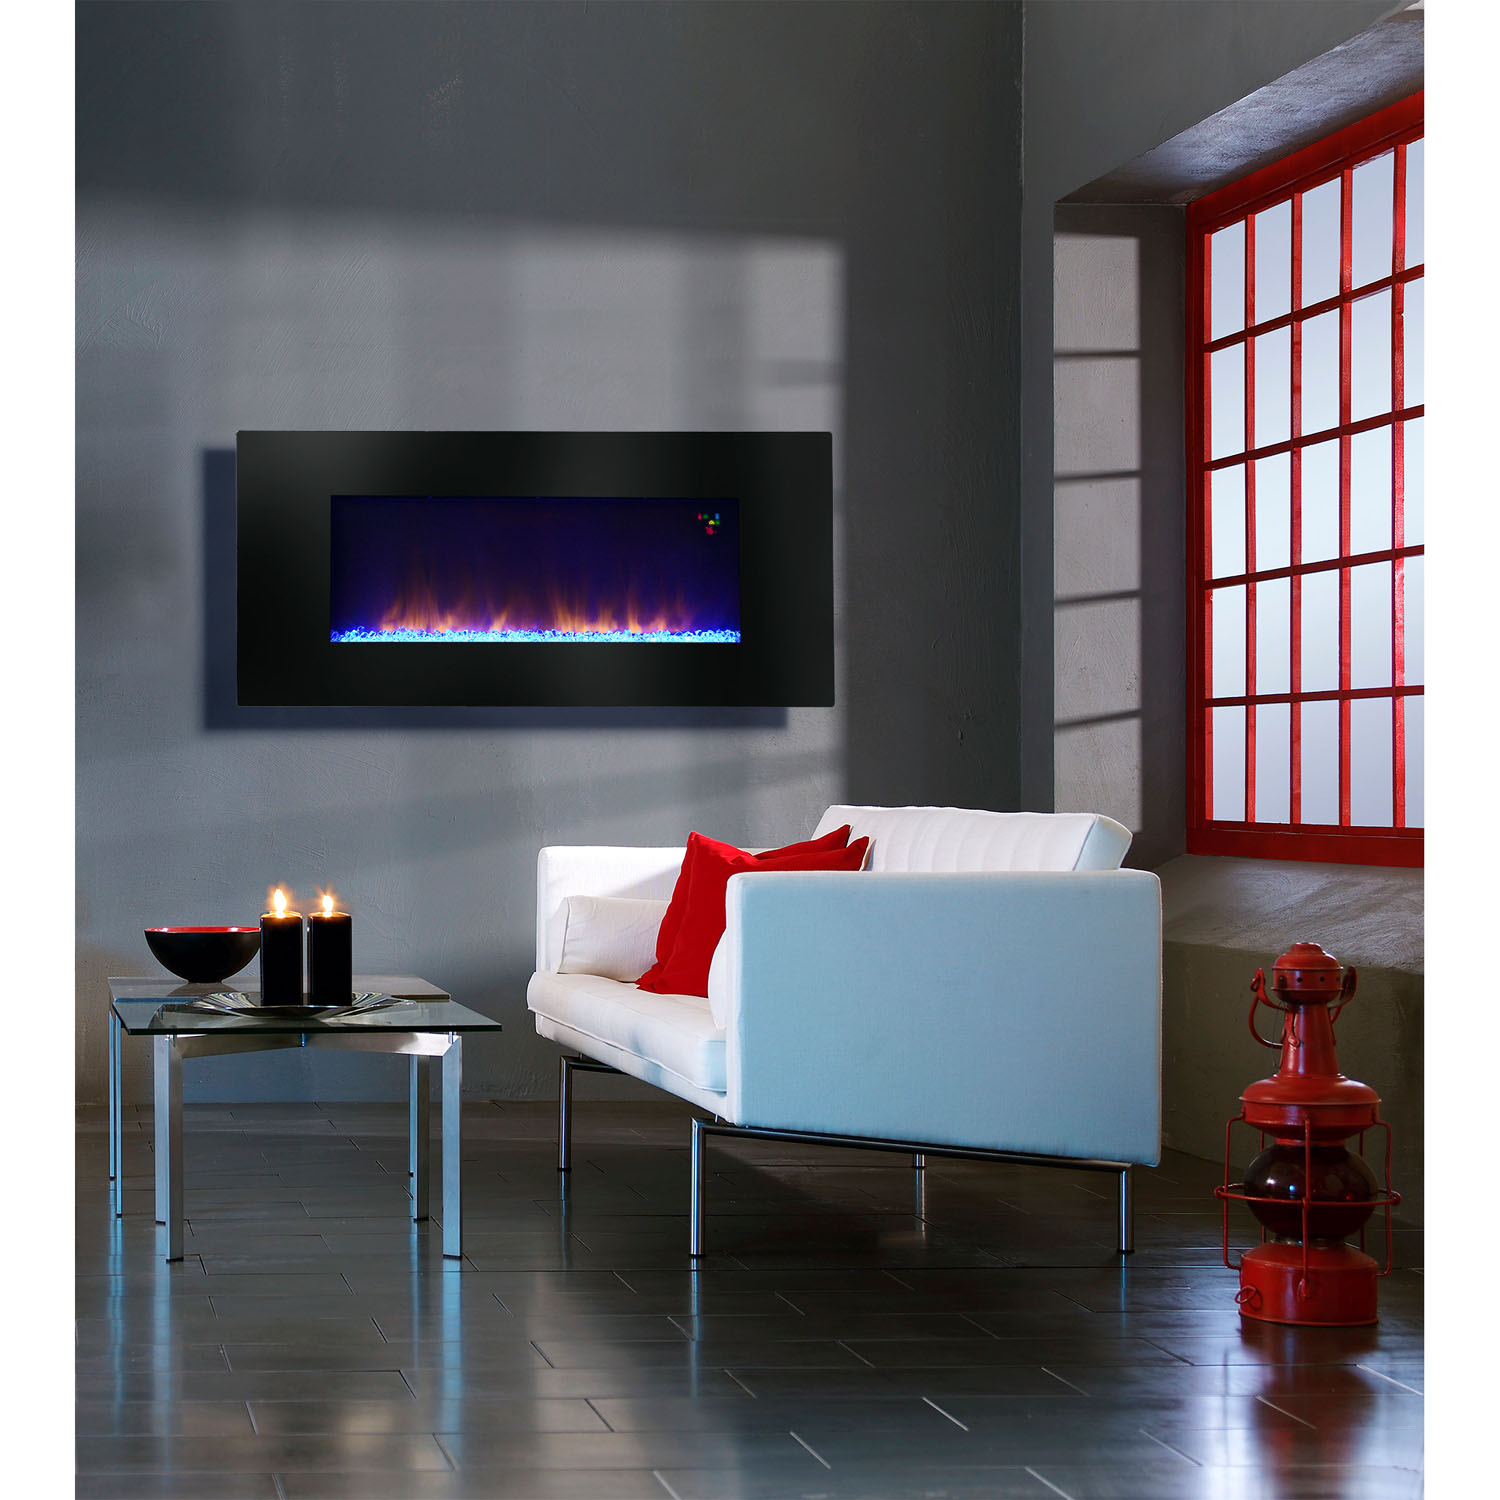 "Warm House 48"" Widescreen Wall-Mounted LED Fireplace with Customized Flame Patterns and Remote"